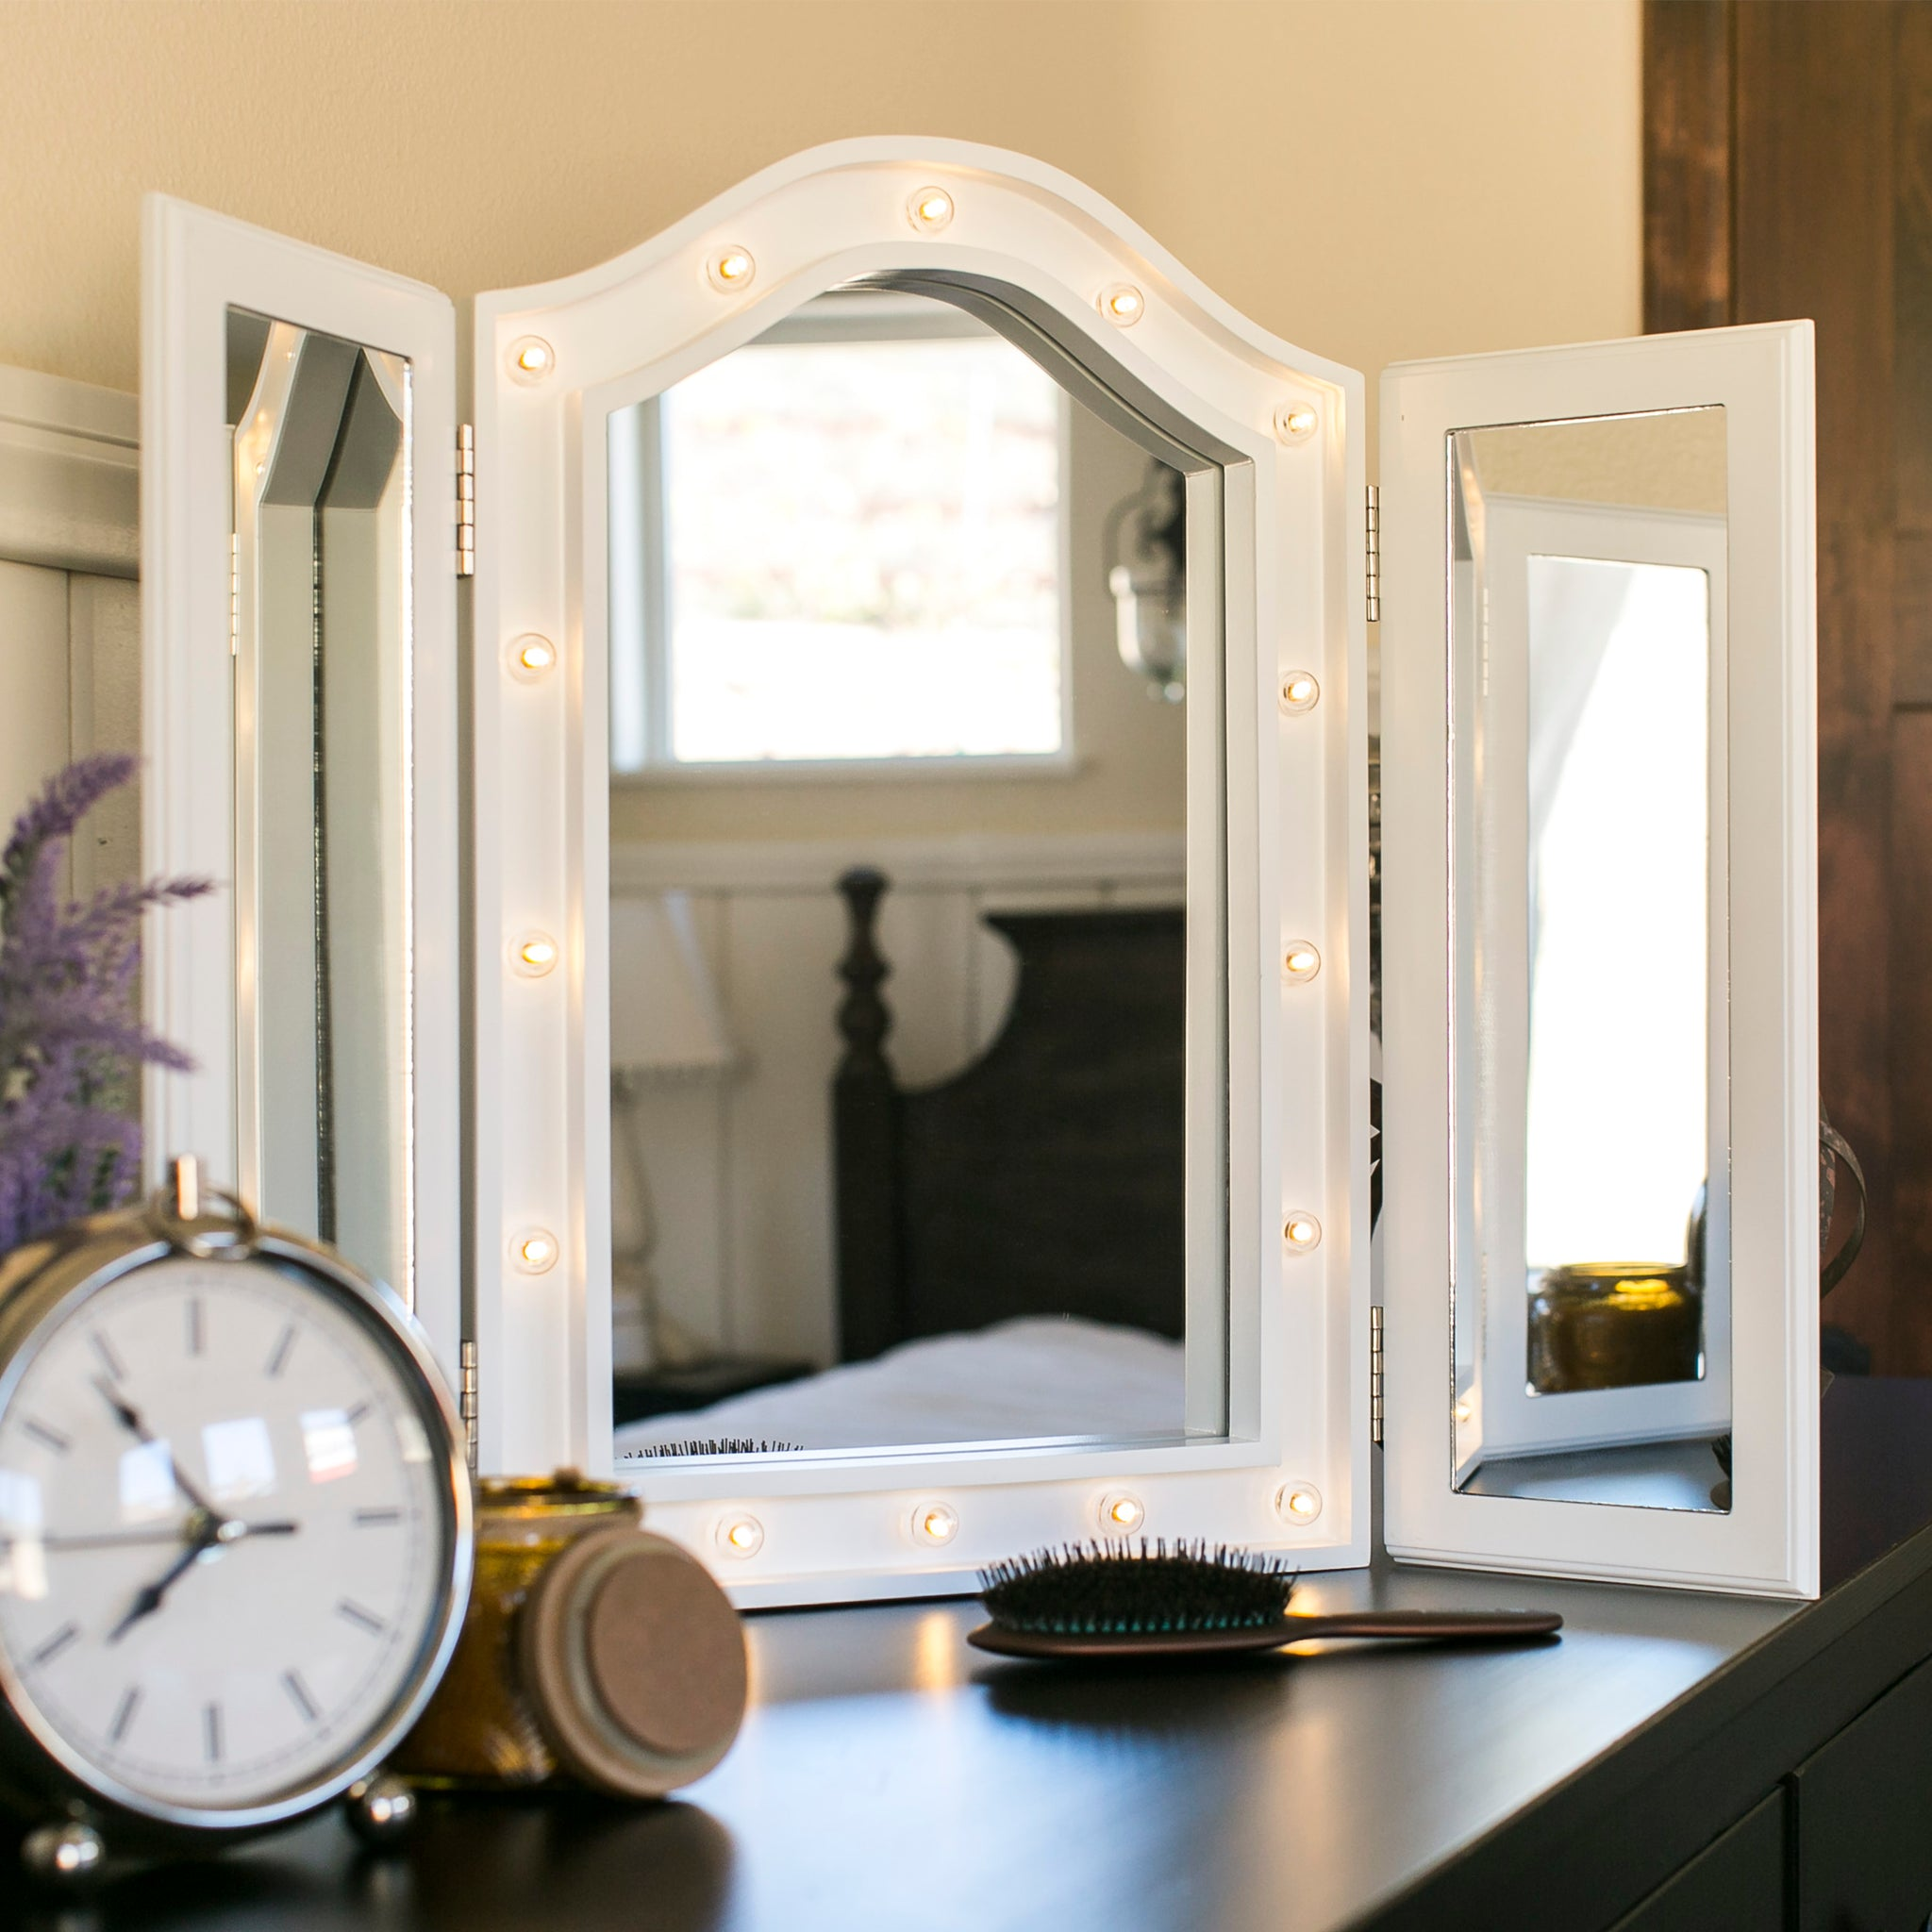 Lit Tabletop Tri-Fold Vanity Mirror w/ LED Lights - White ...